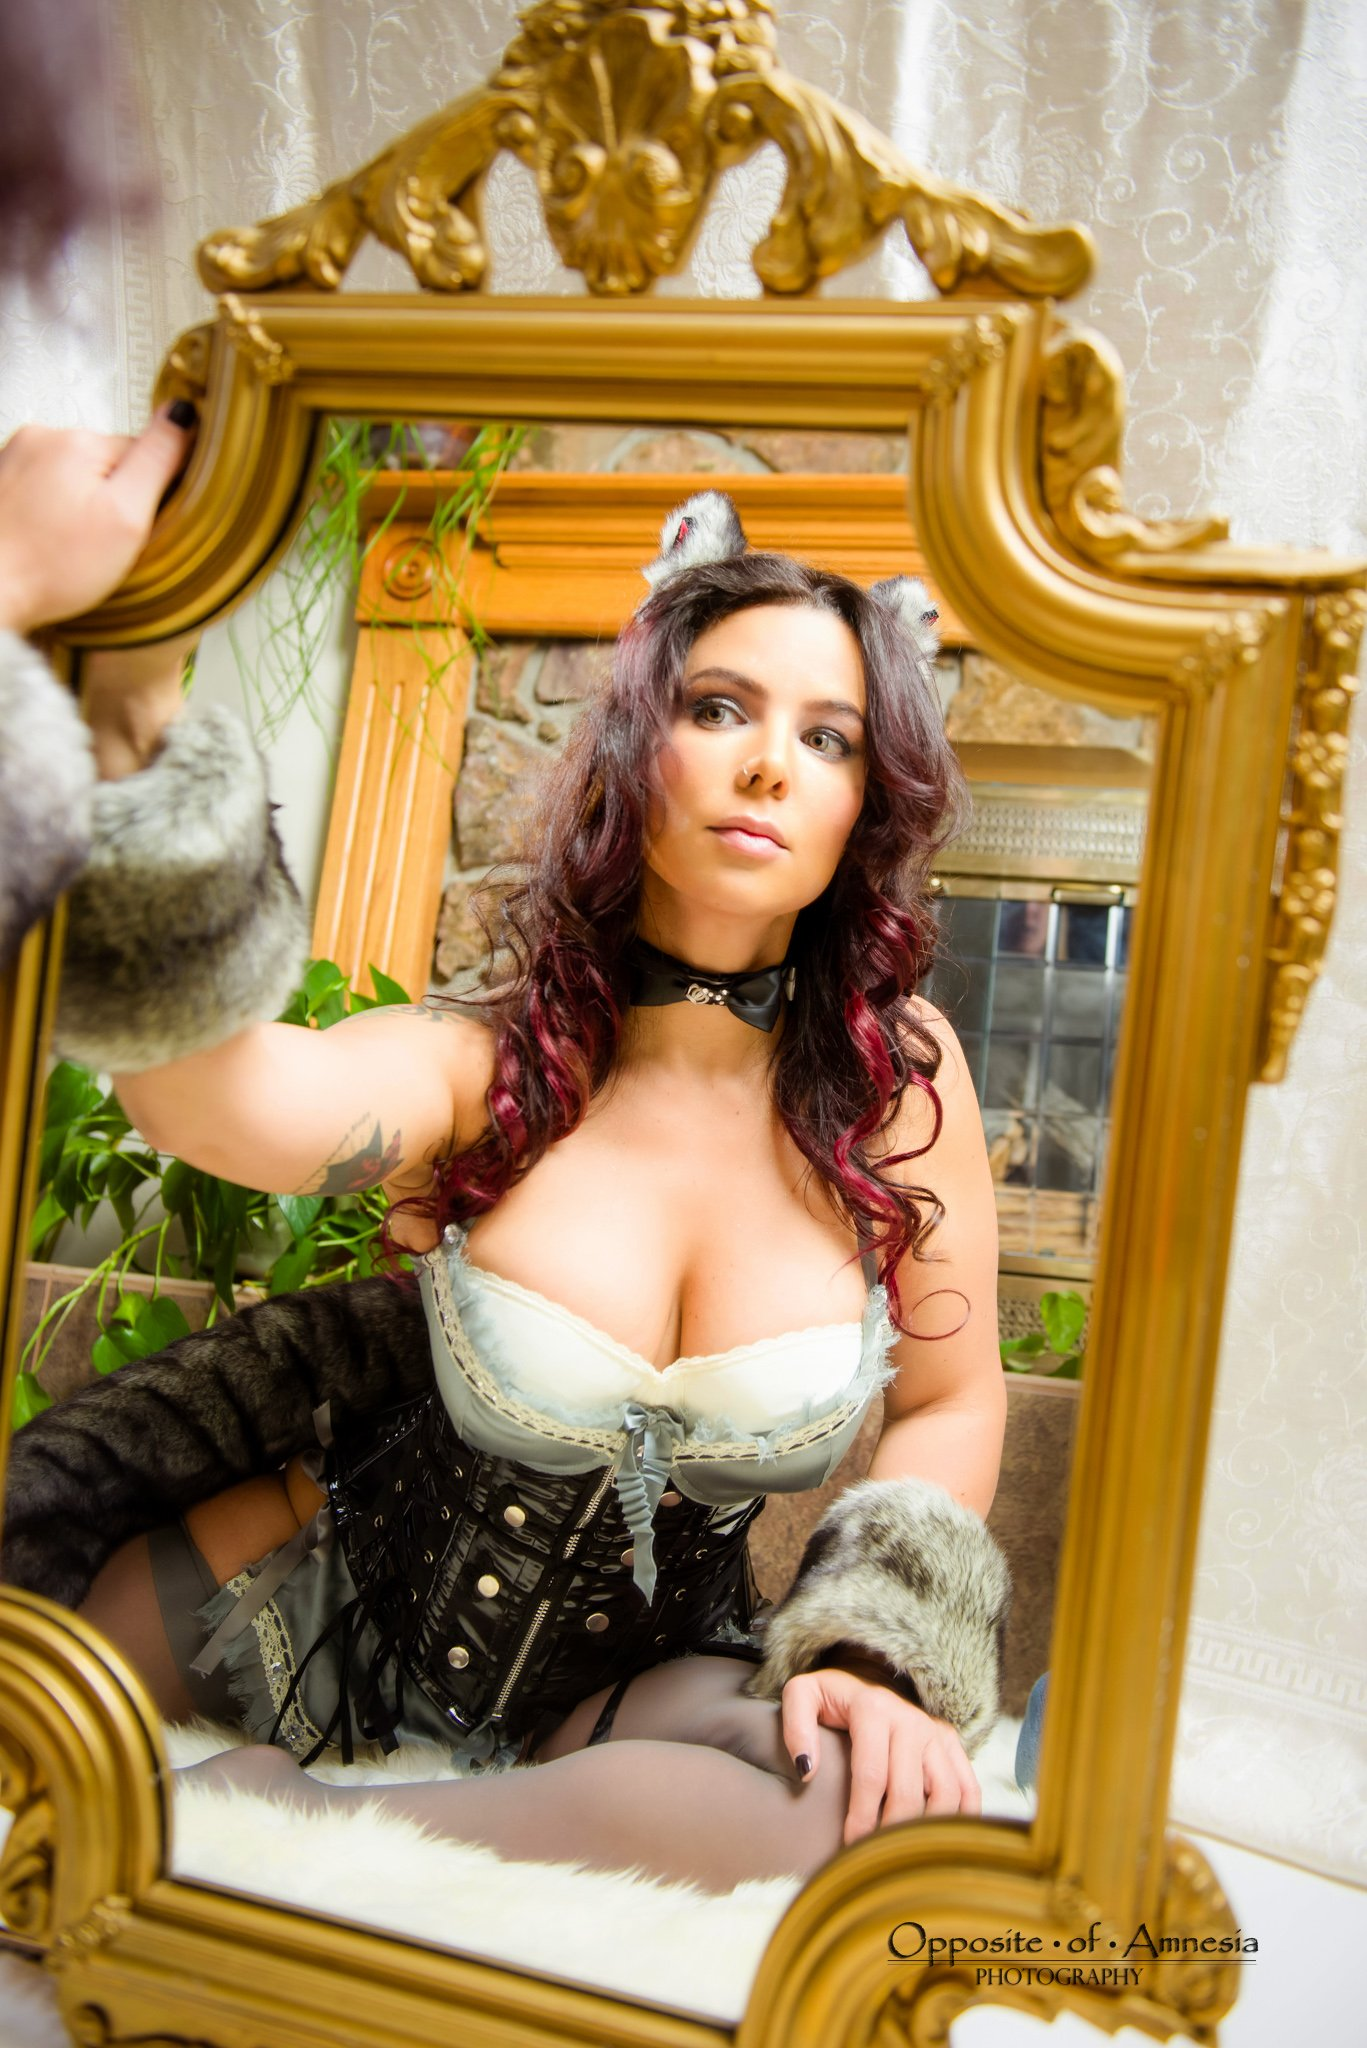 Now who's that pretty kitty in the mirror? post thumbnail